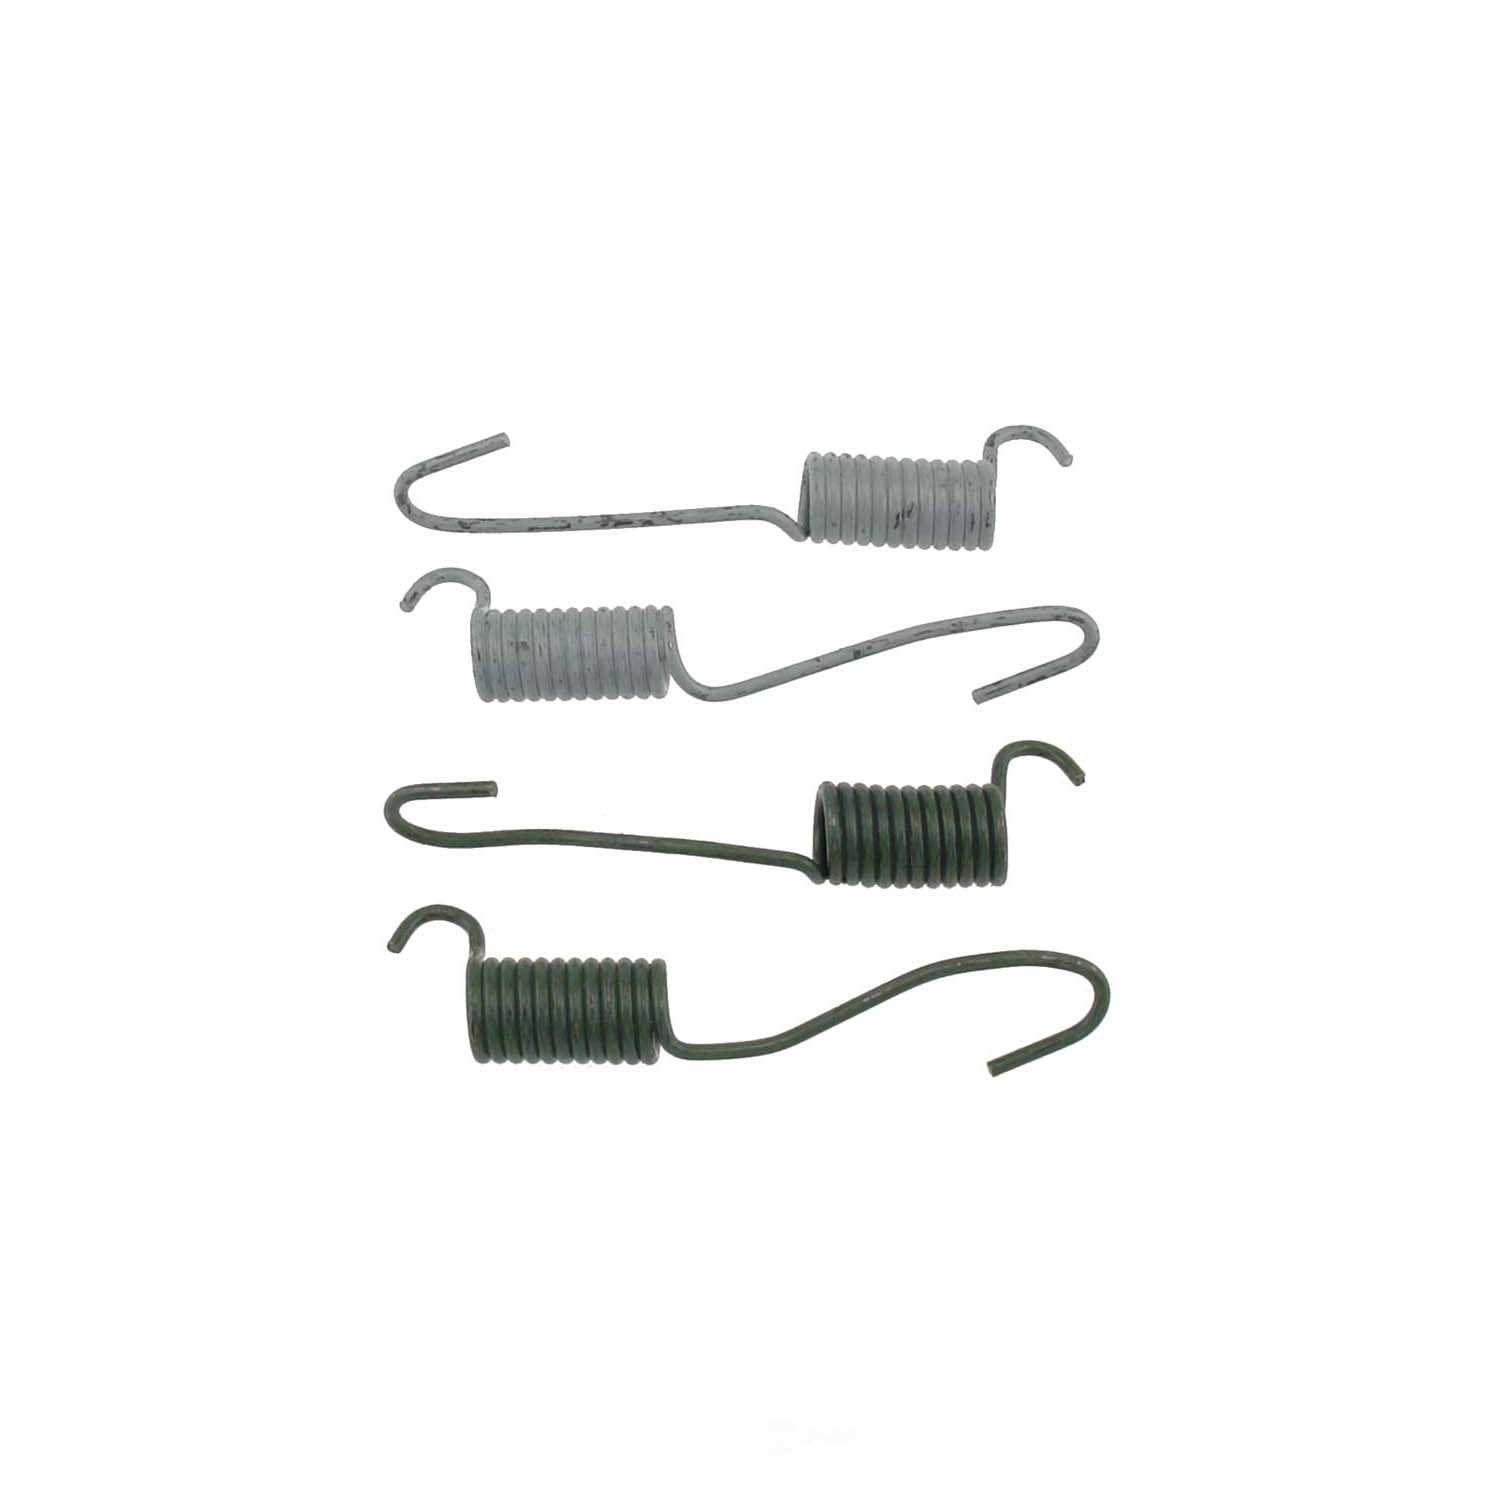 CARLSON QUALITY BRAKE PARTS - Drum Brake Shoe Return Spring Kit - CRL H364